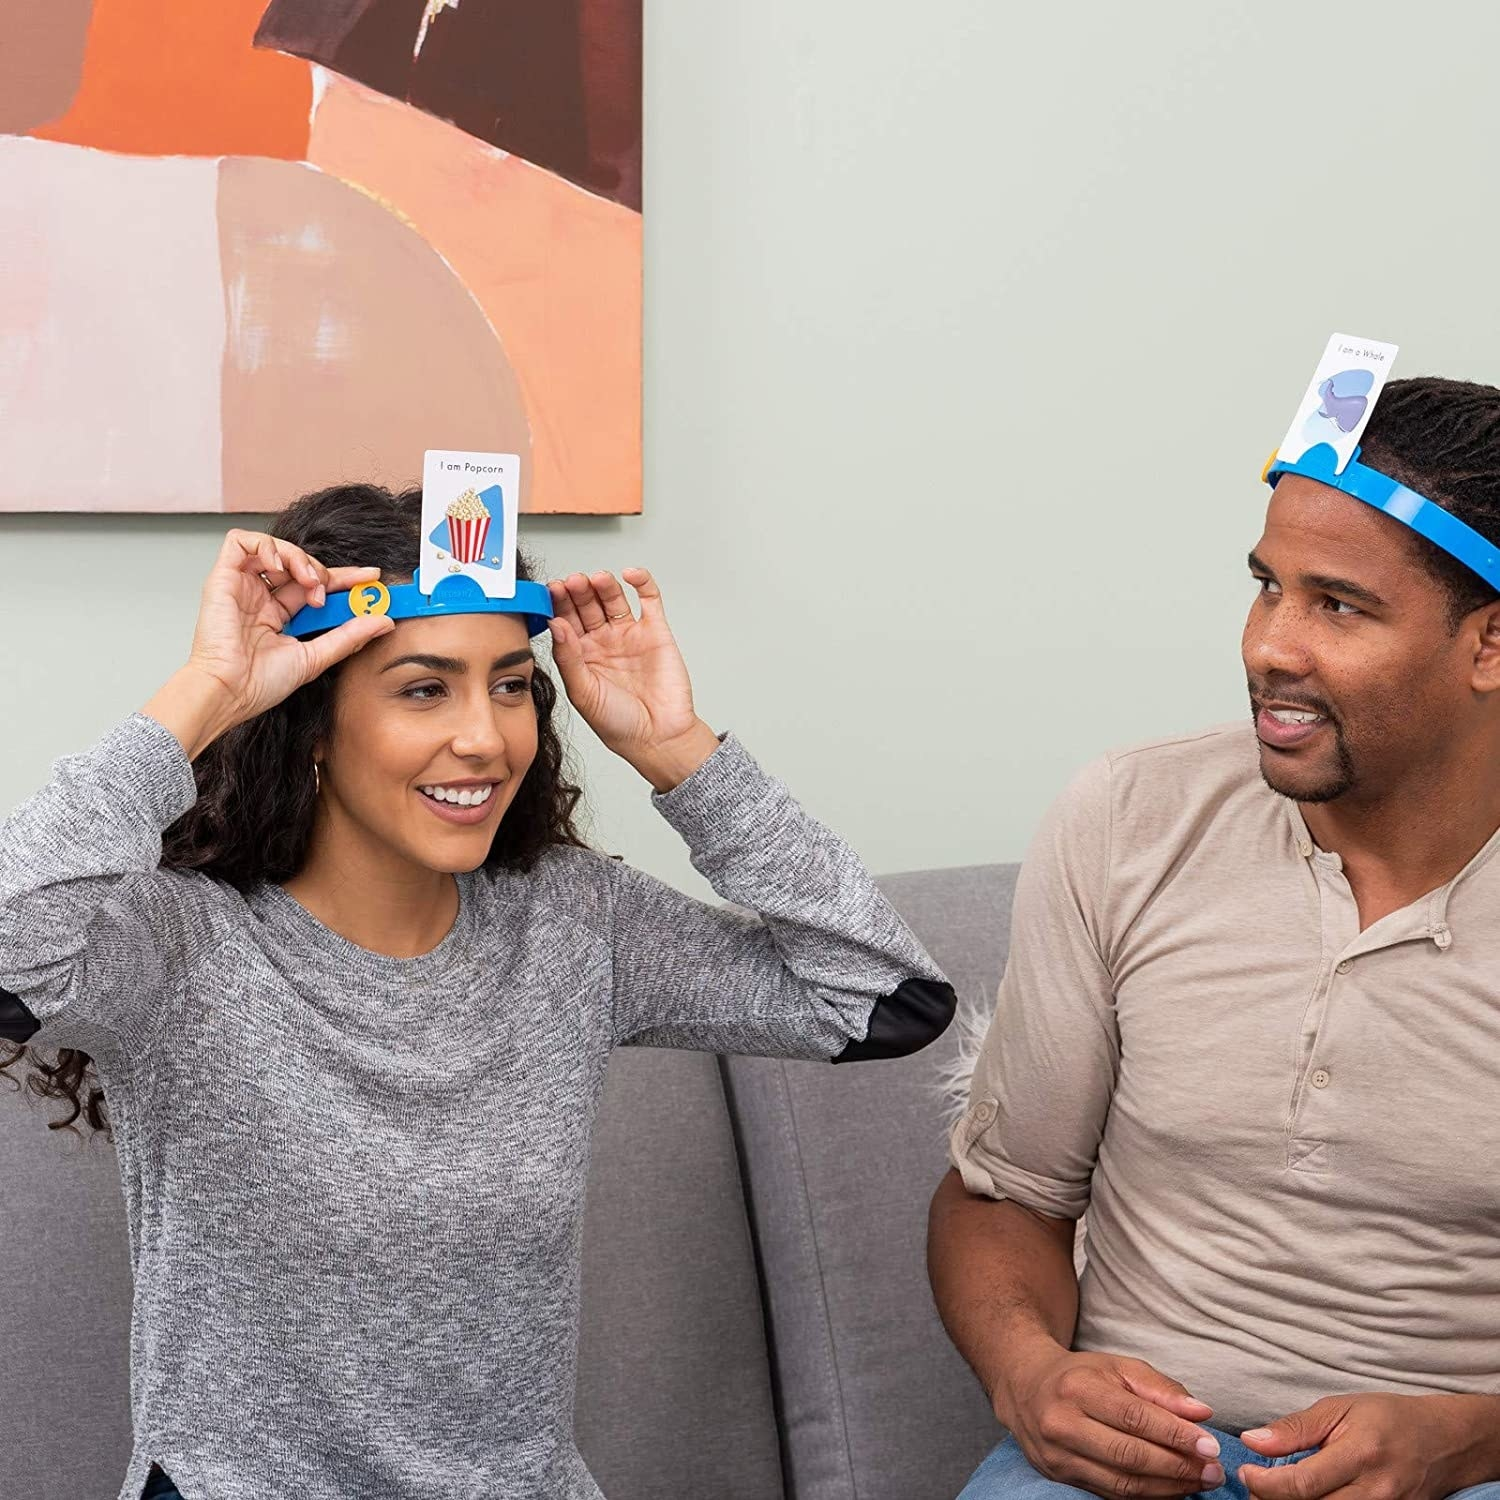 person with a popcorn image on her head and a player next to her looking at it